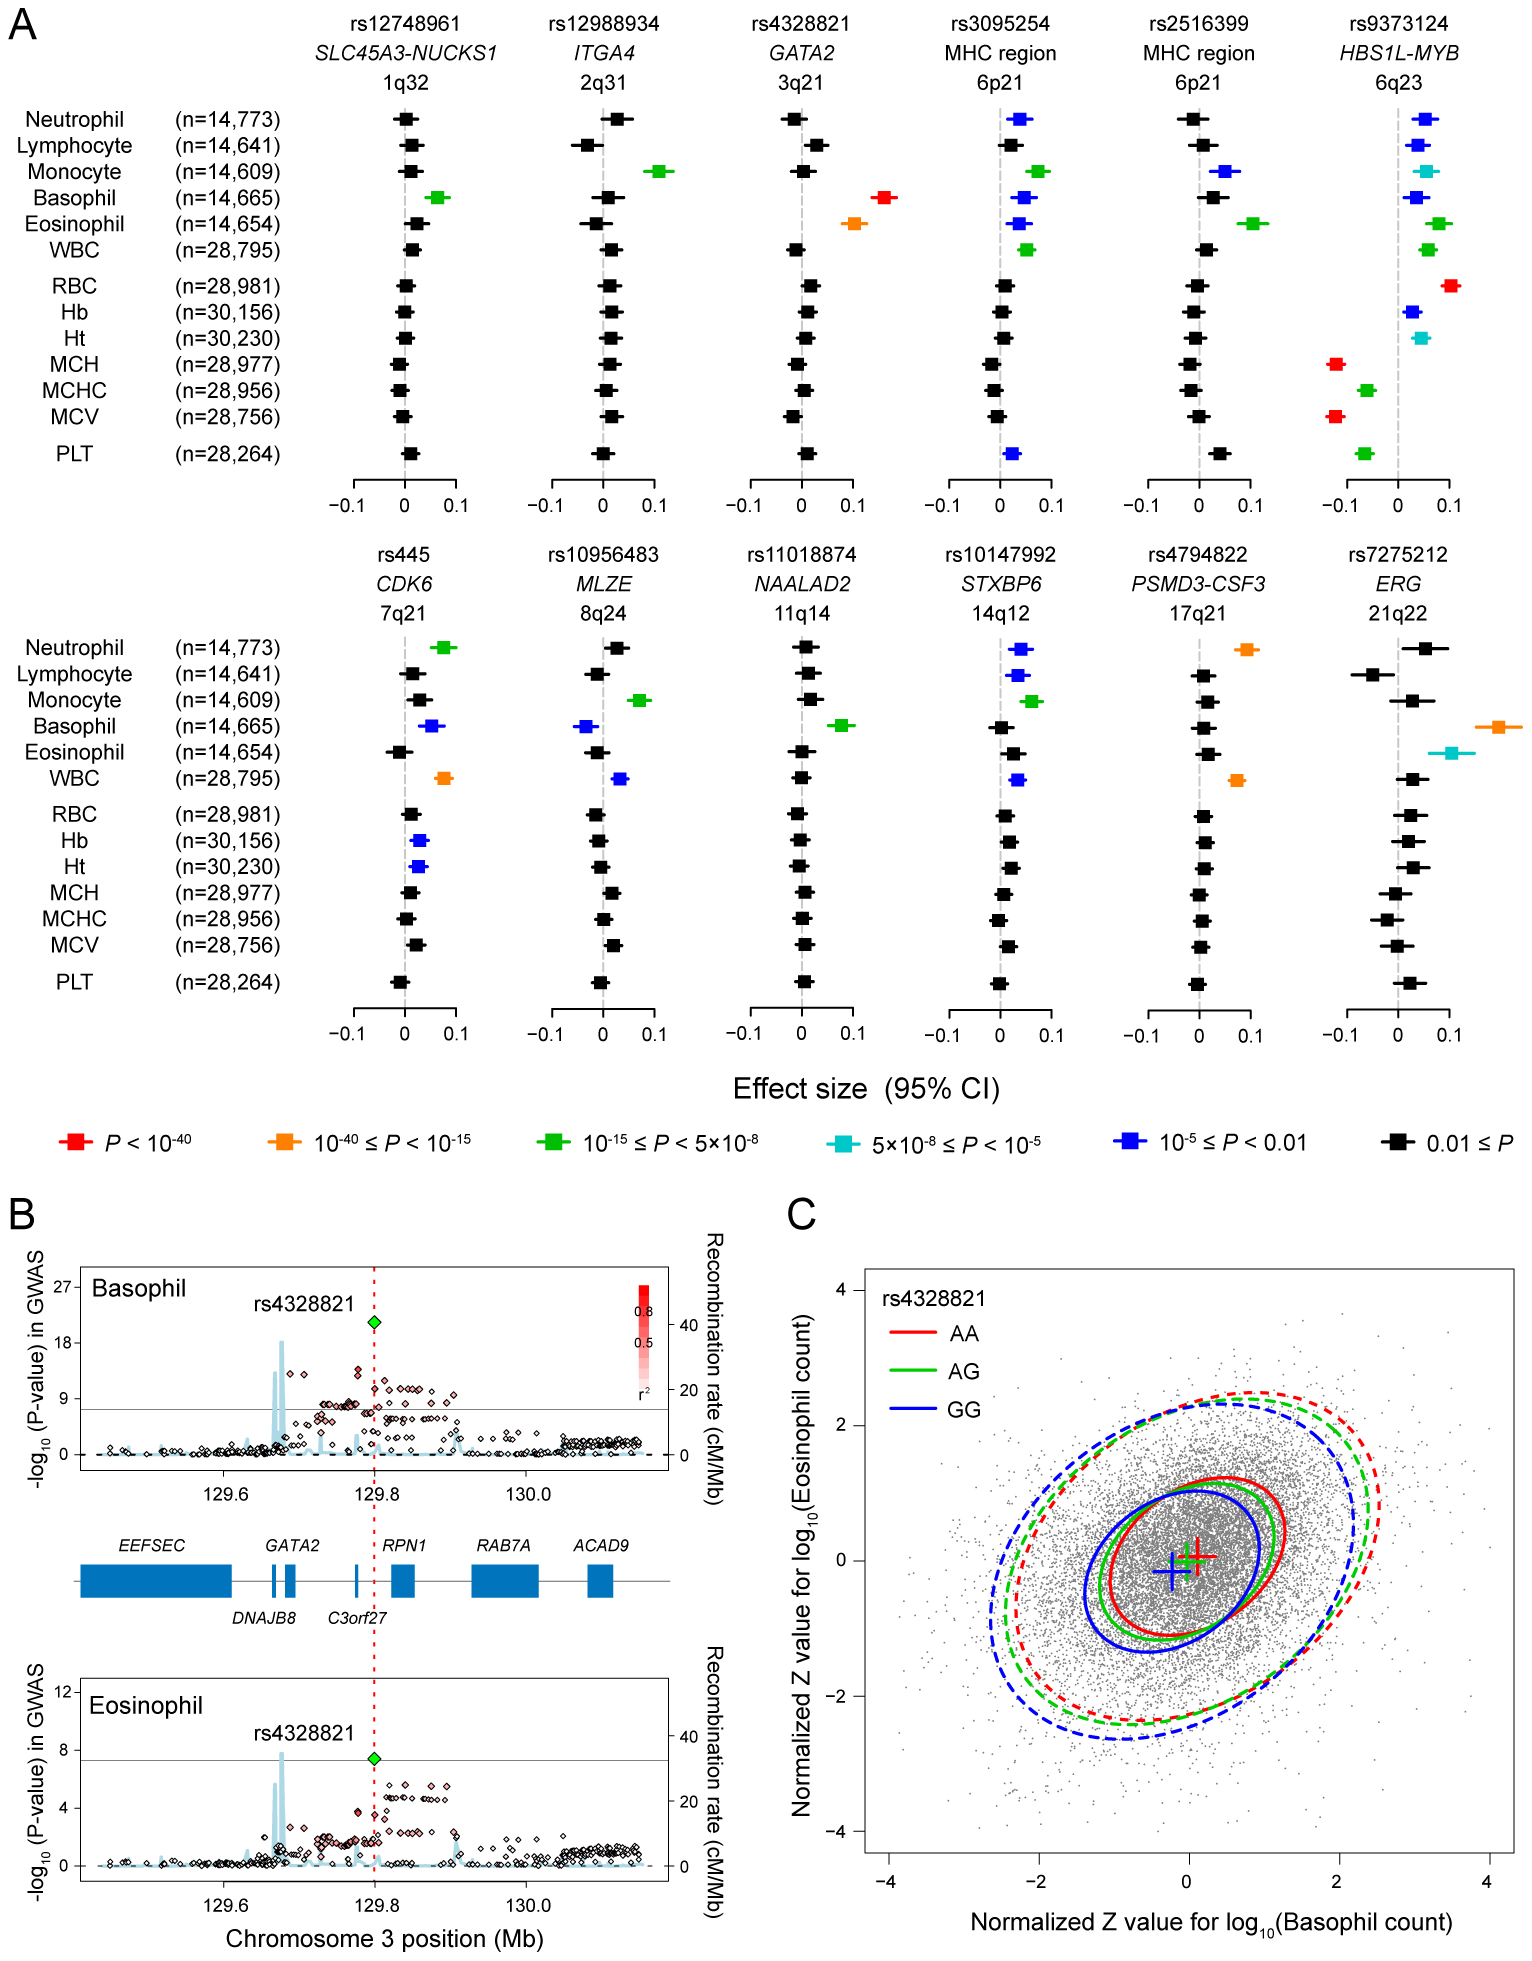 Pleiotropic associations of the genetic loci associated with the WBC subtypes.